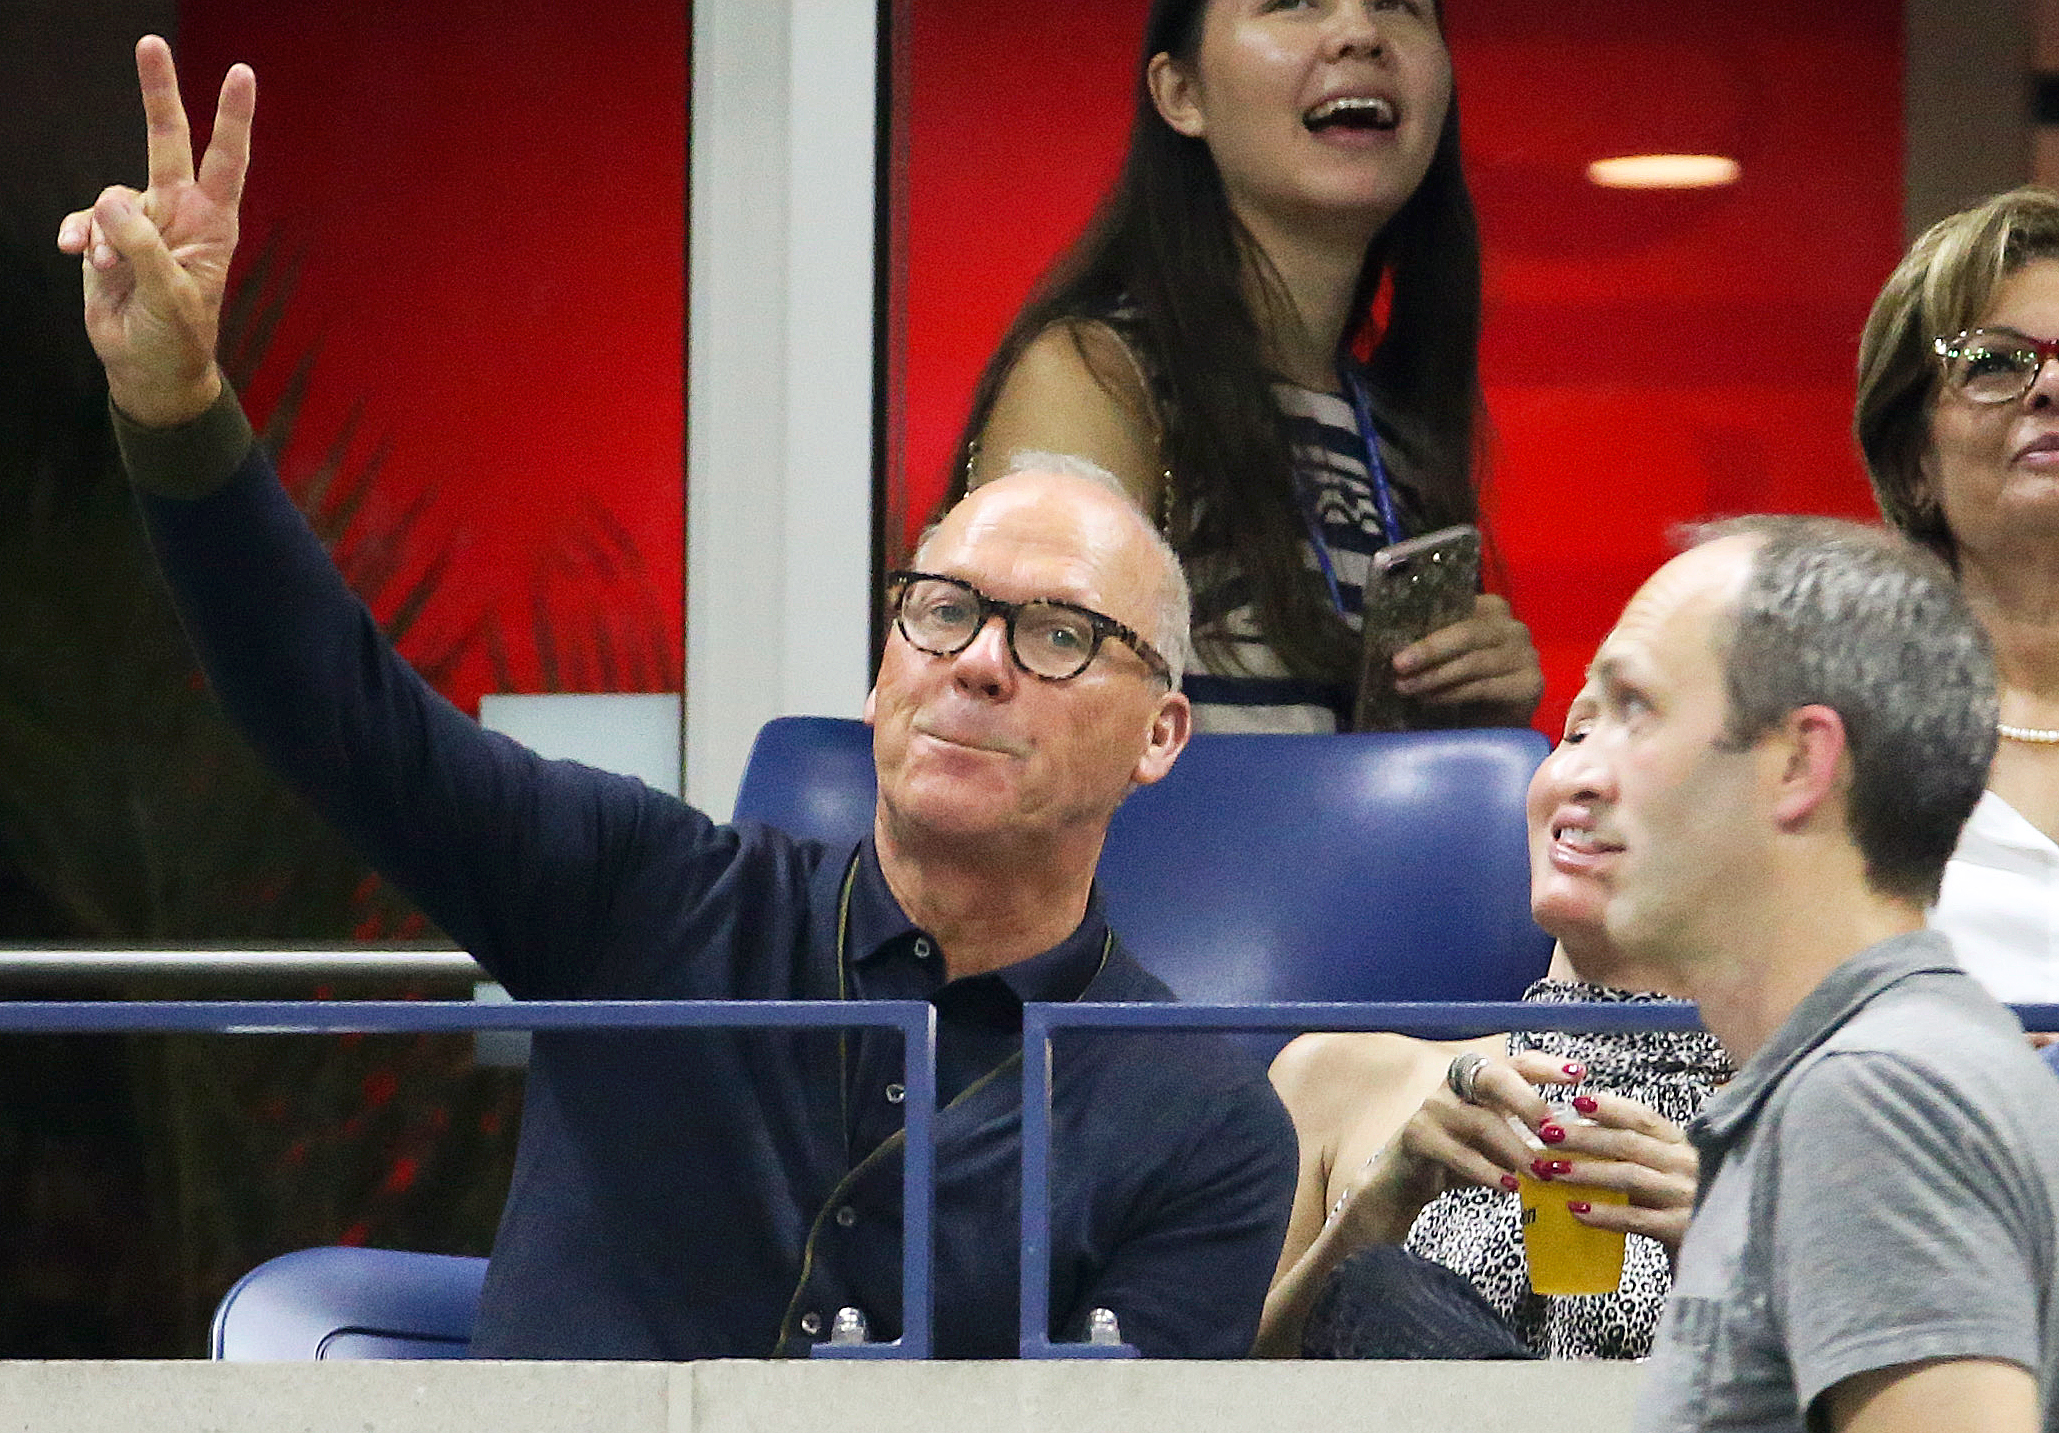 Michael Keaton Us Open 2018 - The Spider-Man: Homecoming actor appeared content as Williams claimed another victory in the quarterfinal on September 4.